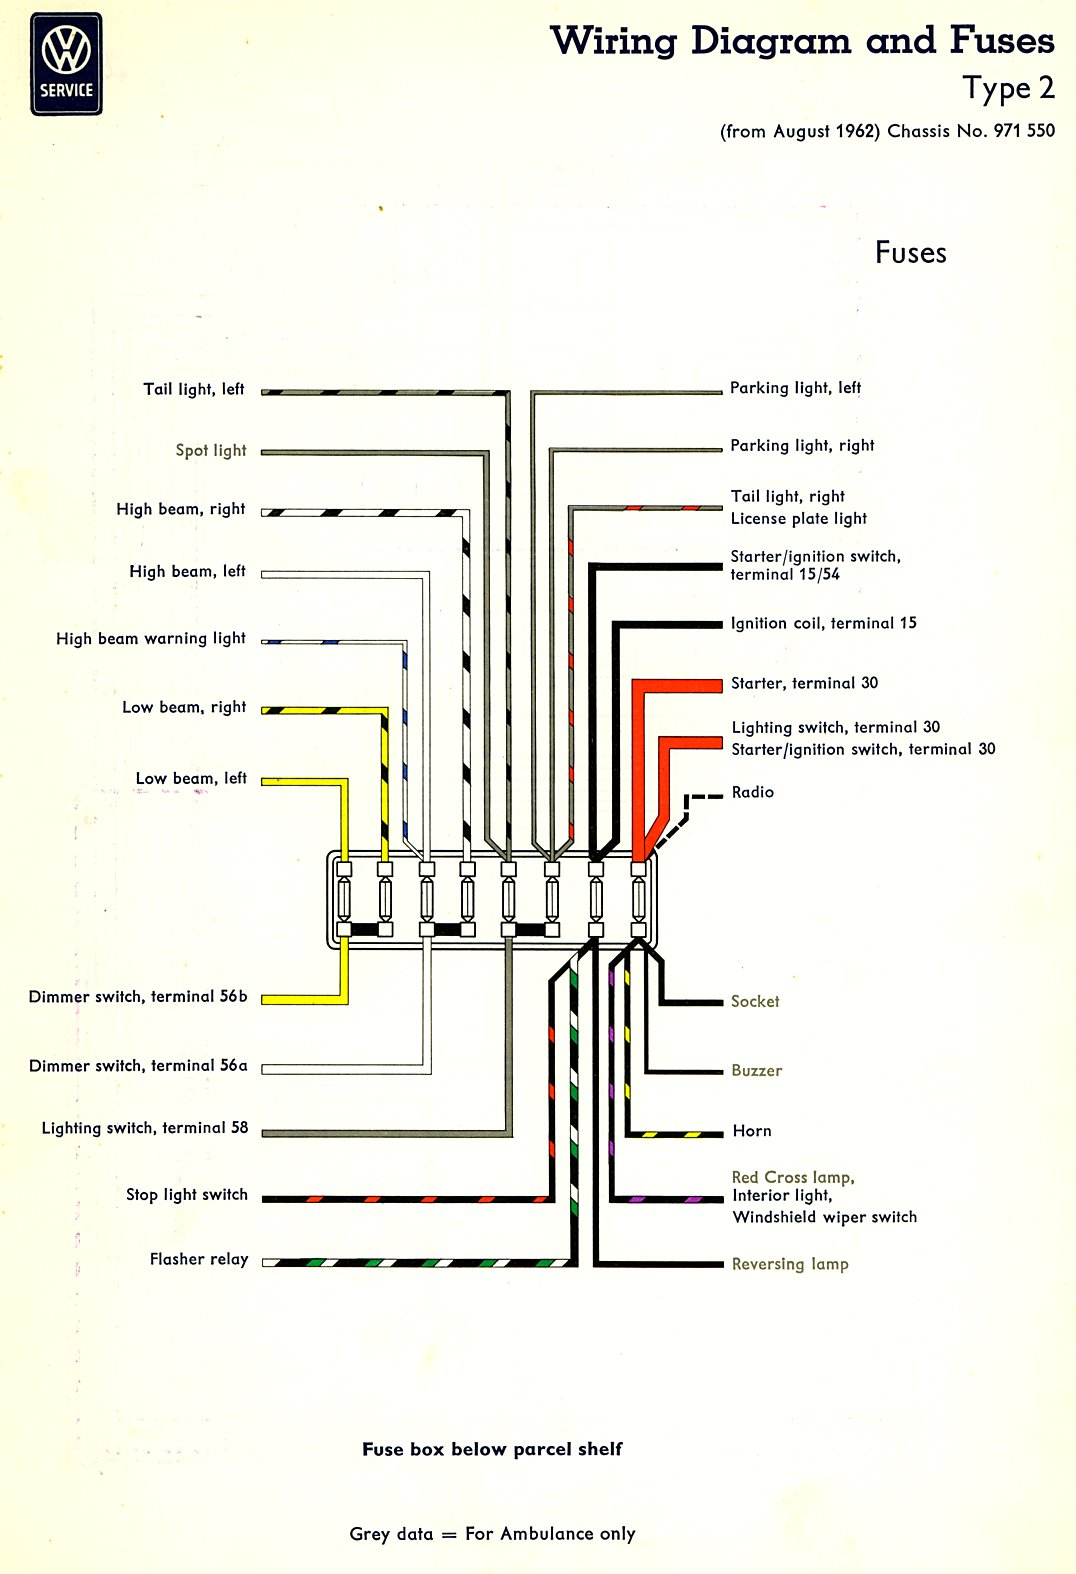 bus_63_fuses thesamba com type 2 wiring diagrams 1978 vw bus fuse box diagram at suagrazia.org